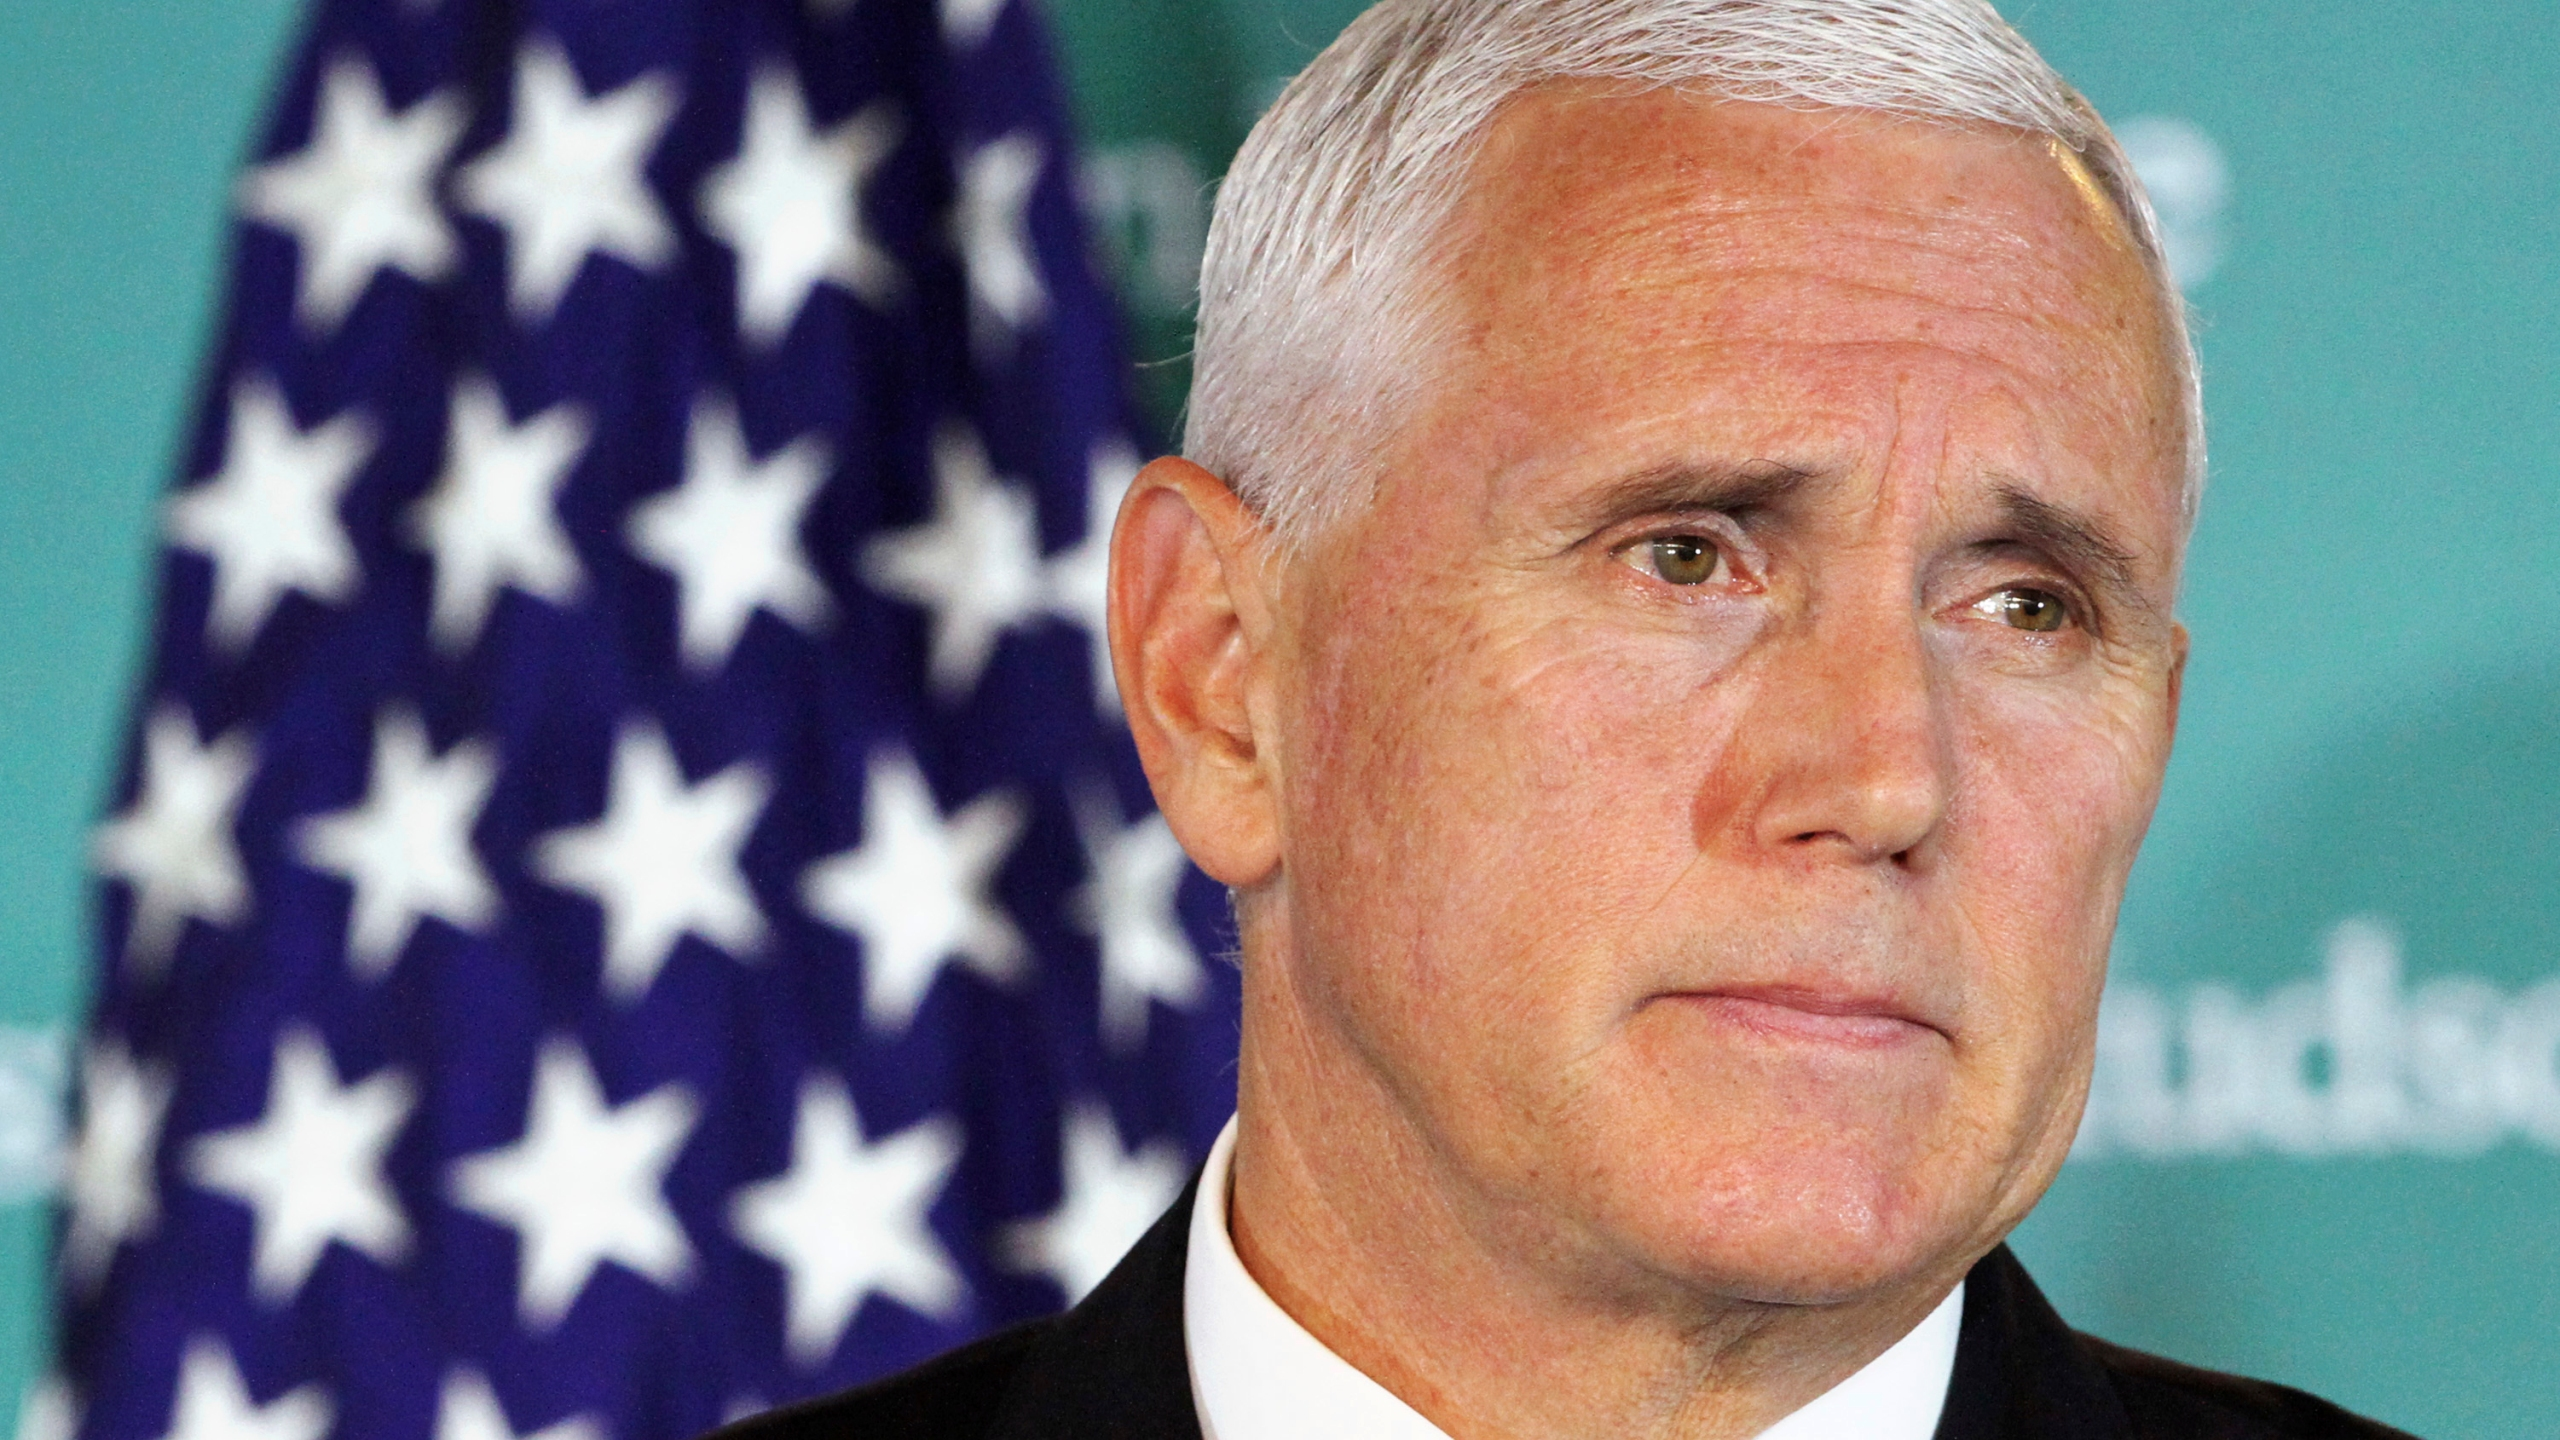 US_China_Pence_53912-159532.jpg41633743